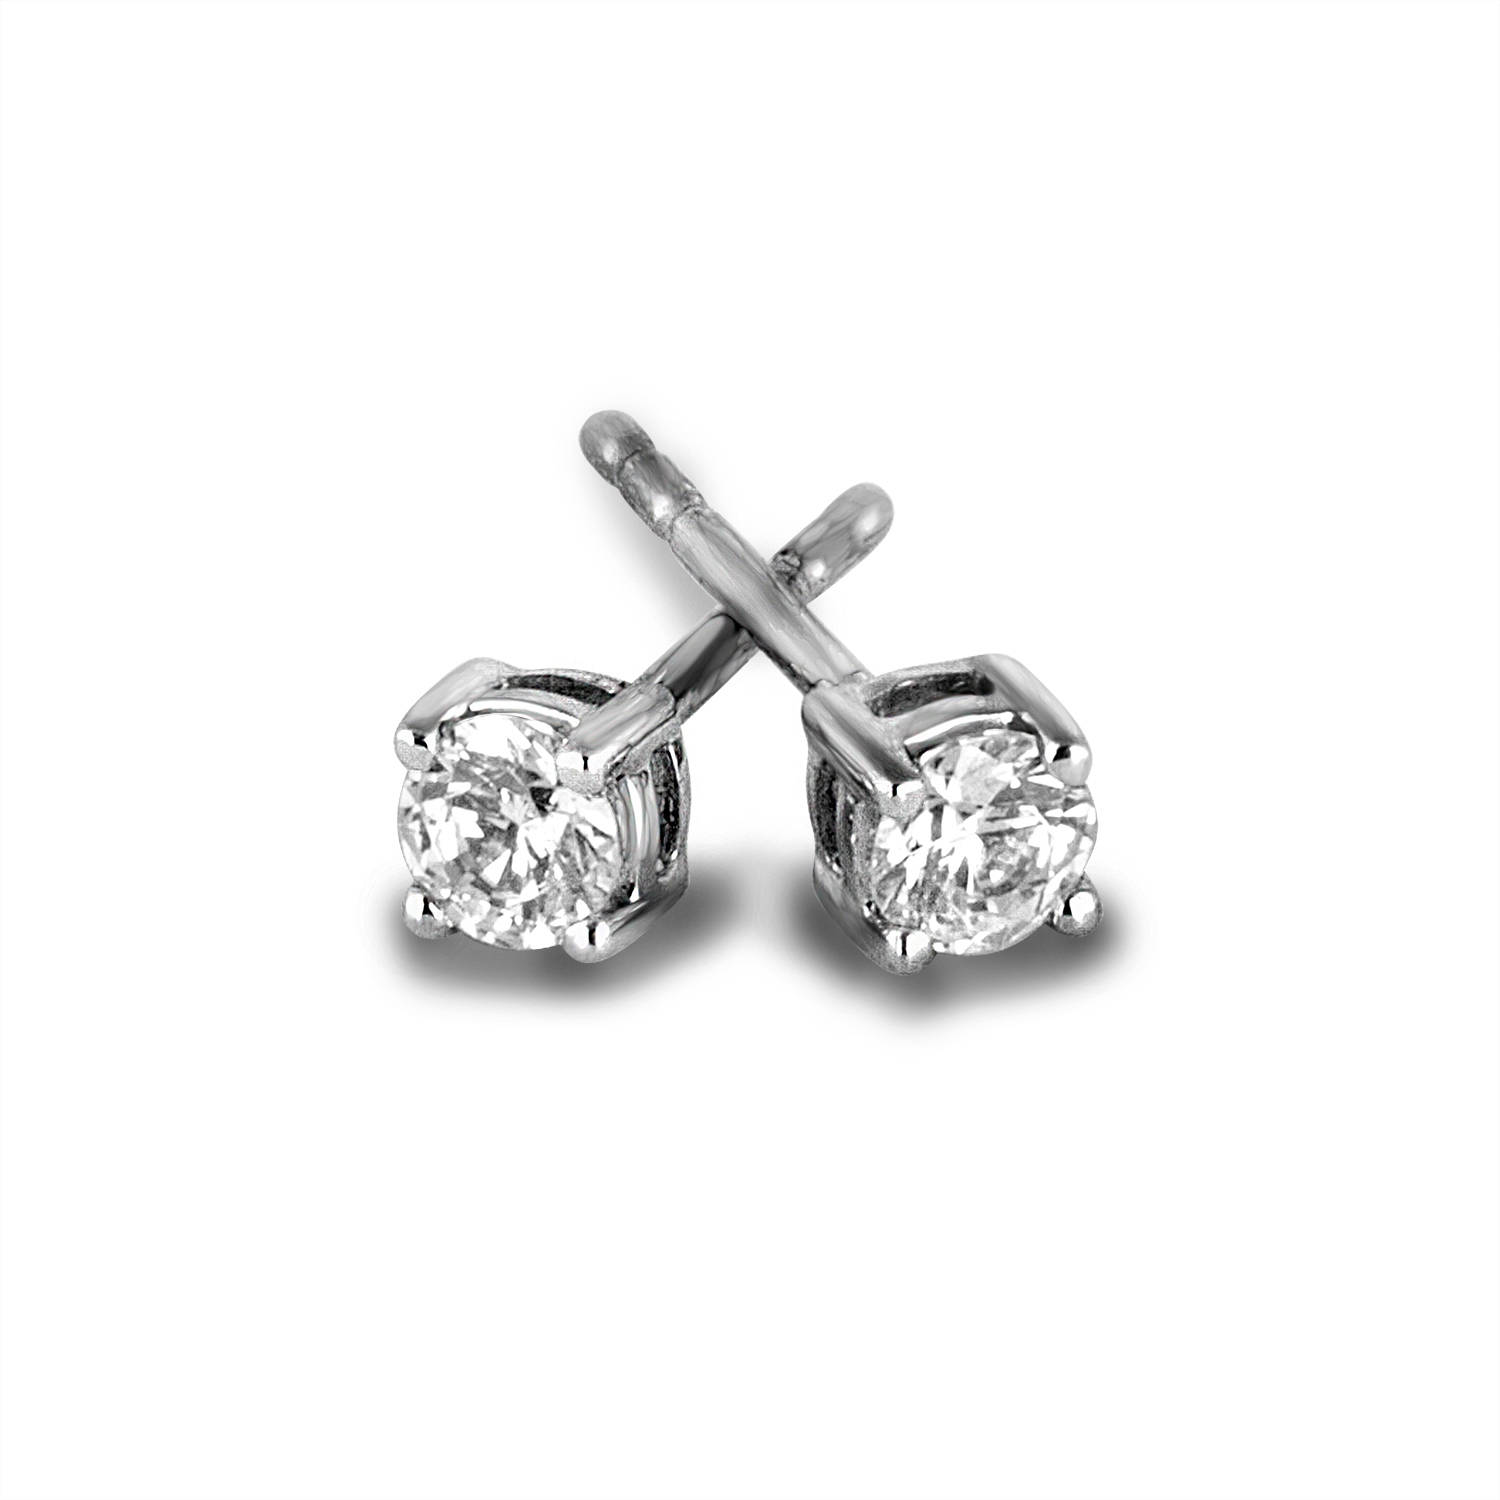 Unbranded 3 8 Carat T W Round Diamond Sterling Silver Stud Earrings